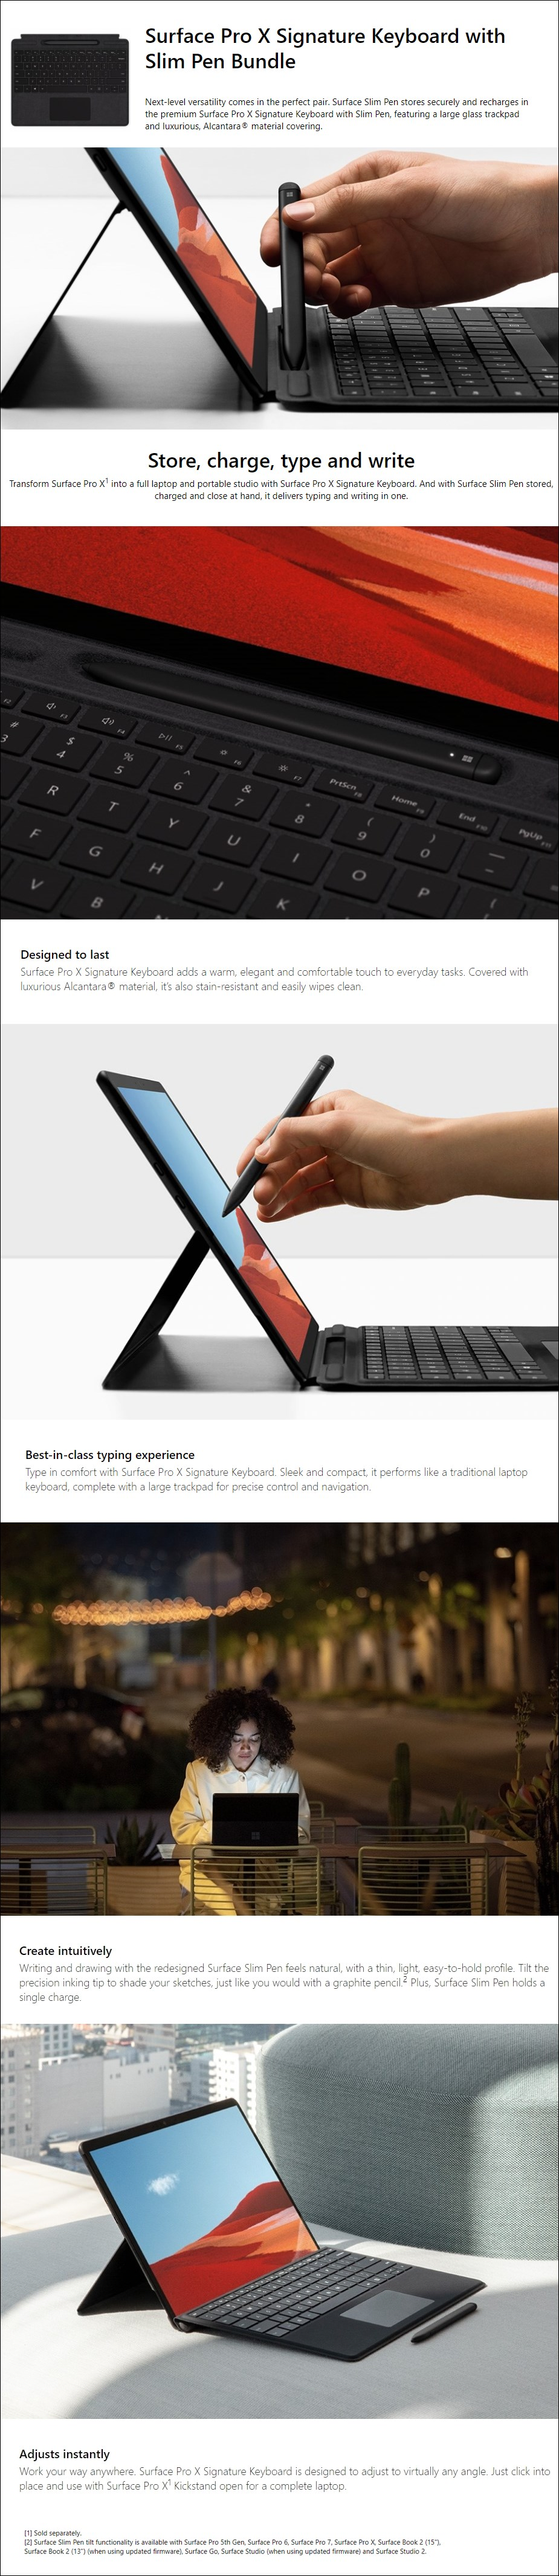 Microsoft Surface Pro X Signature Keyboard with Slim Pen - Black - Overview 1